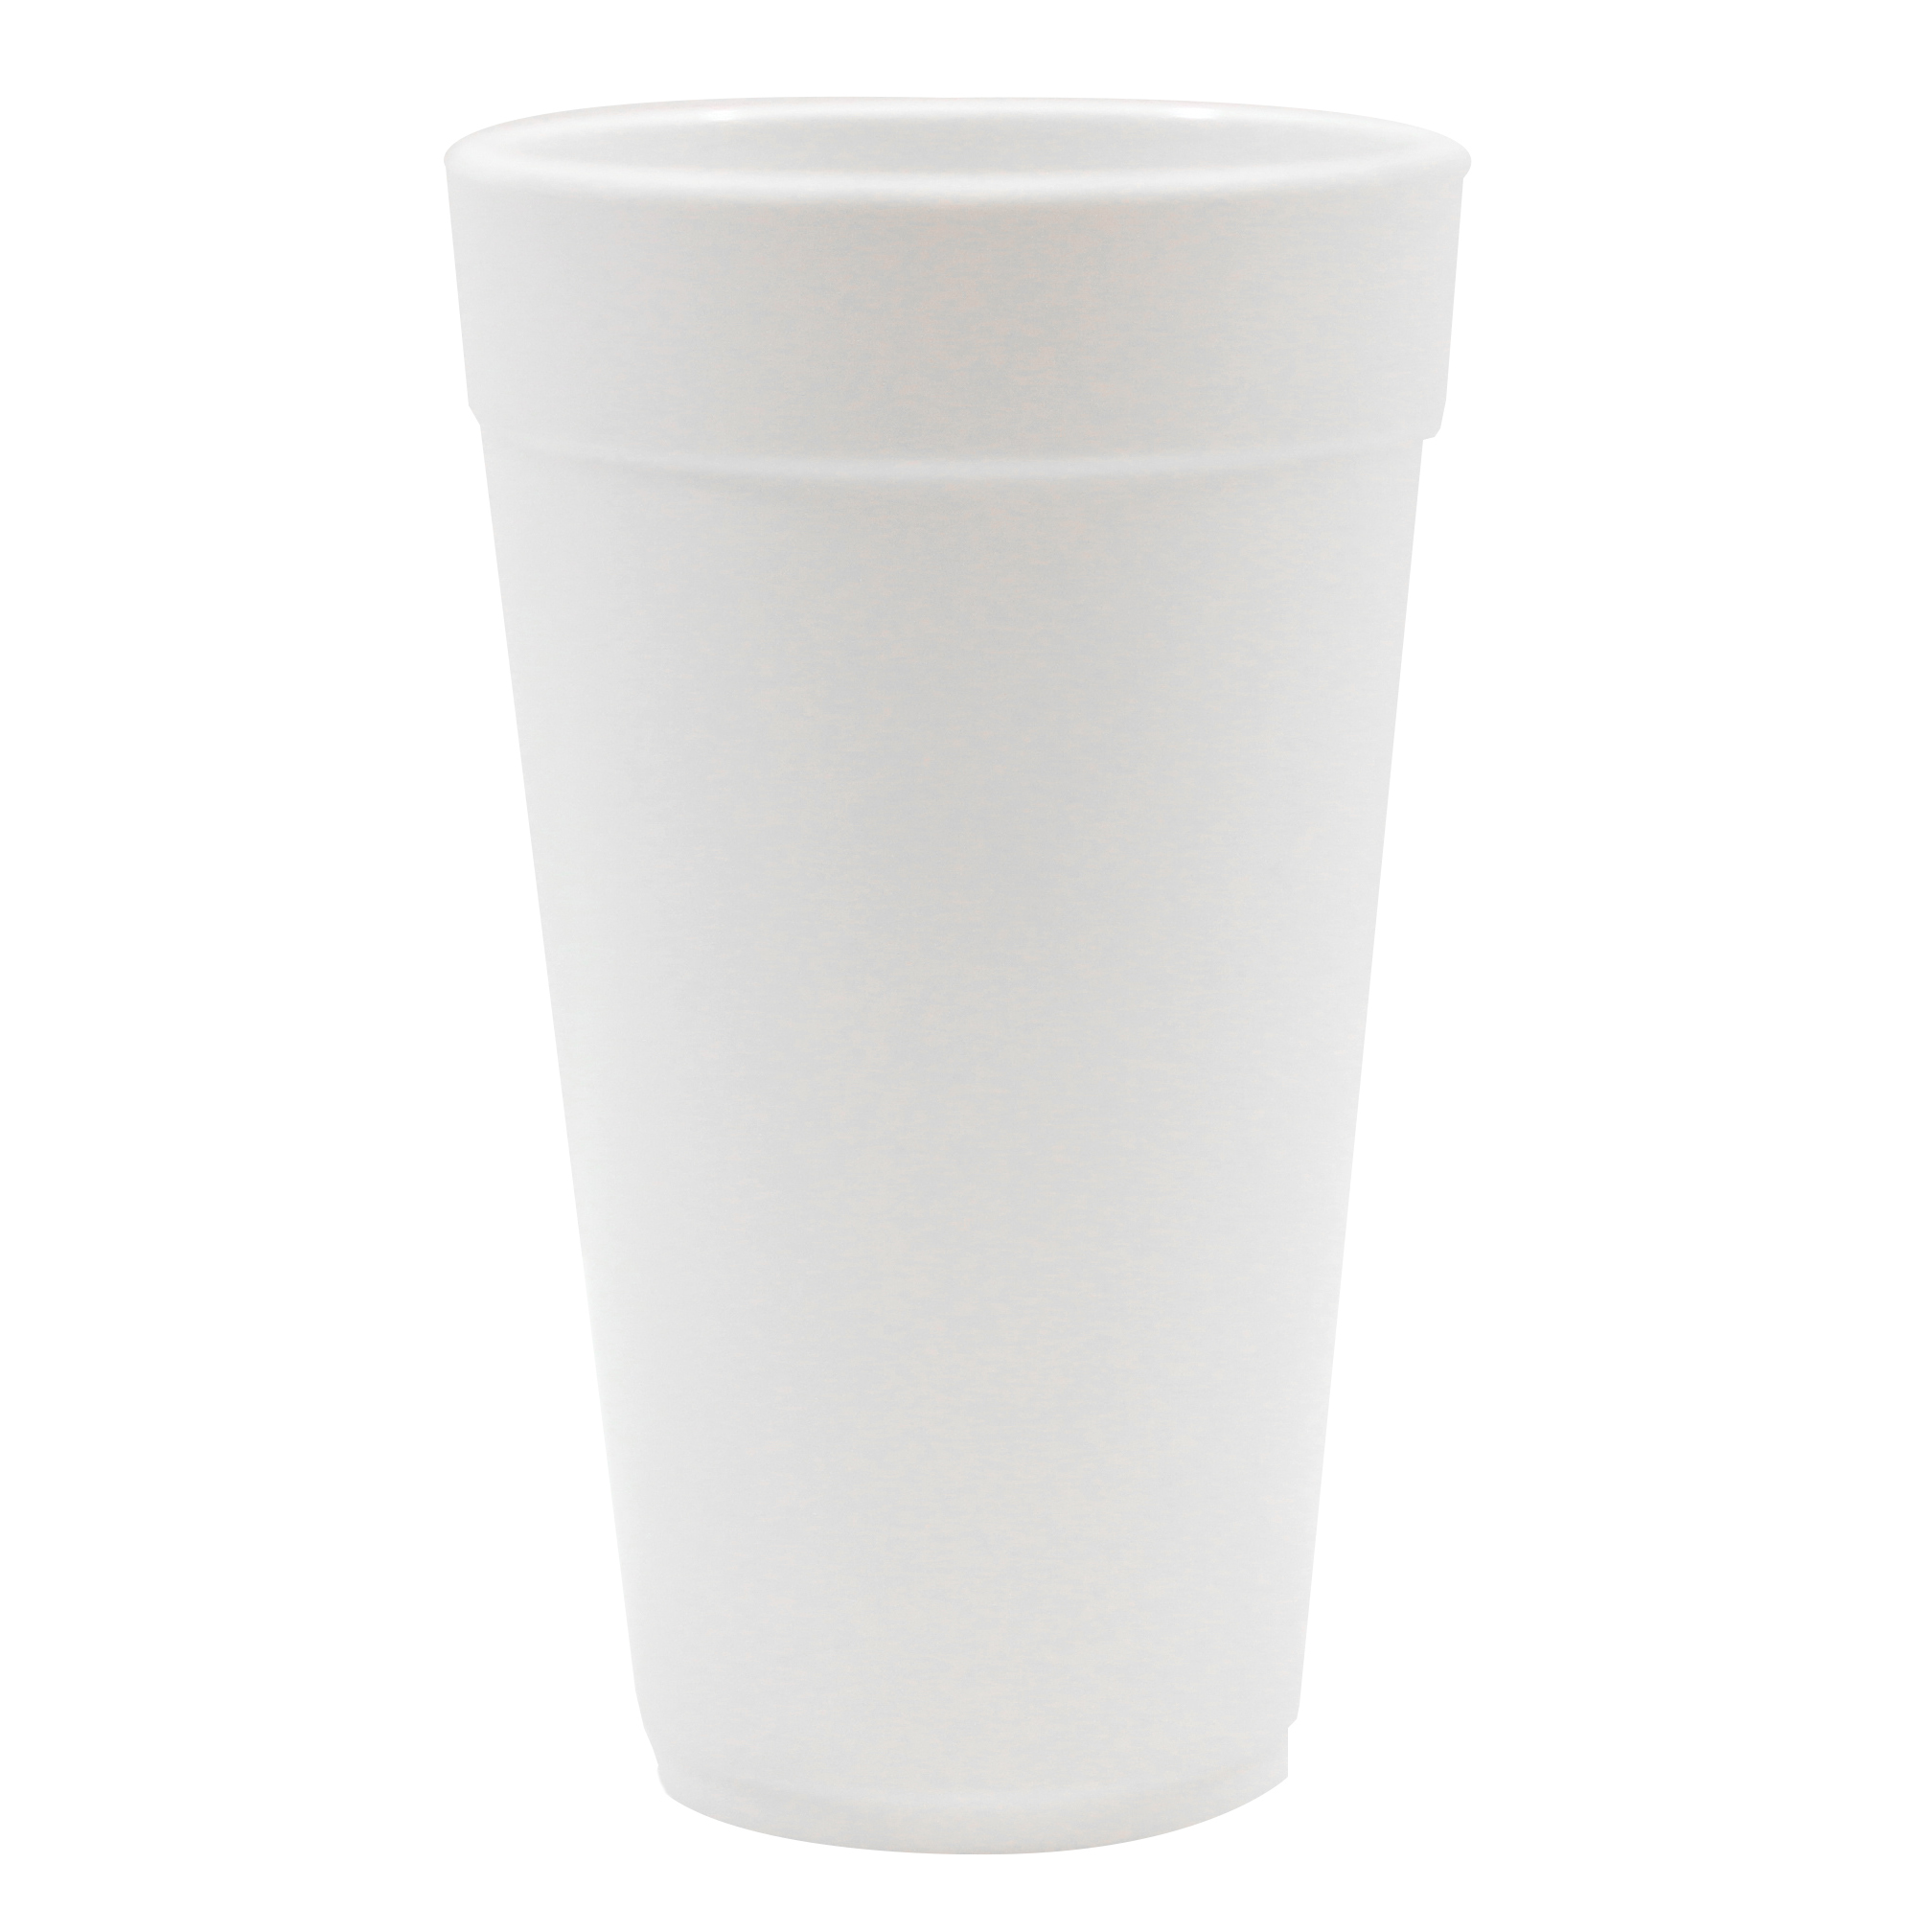 TableCraft Products 20032W cups, plastic